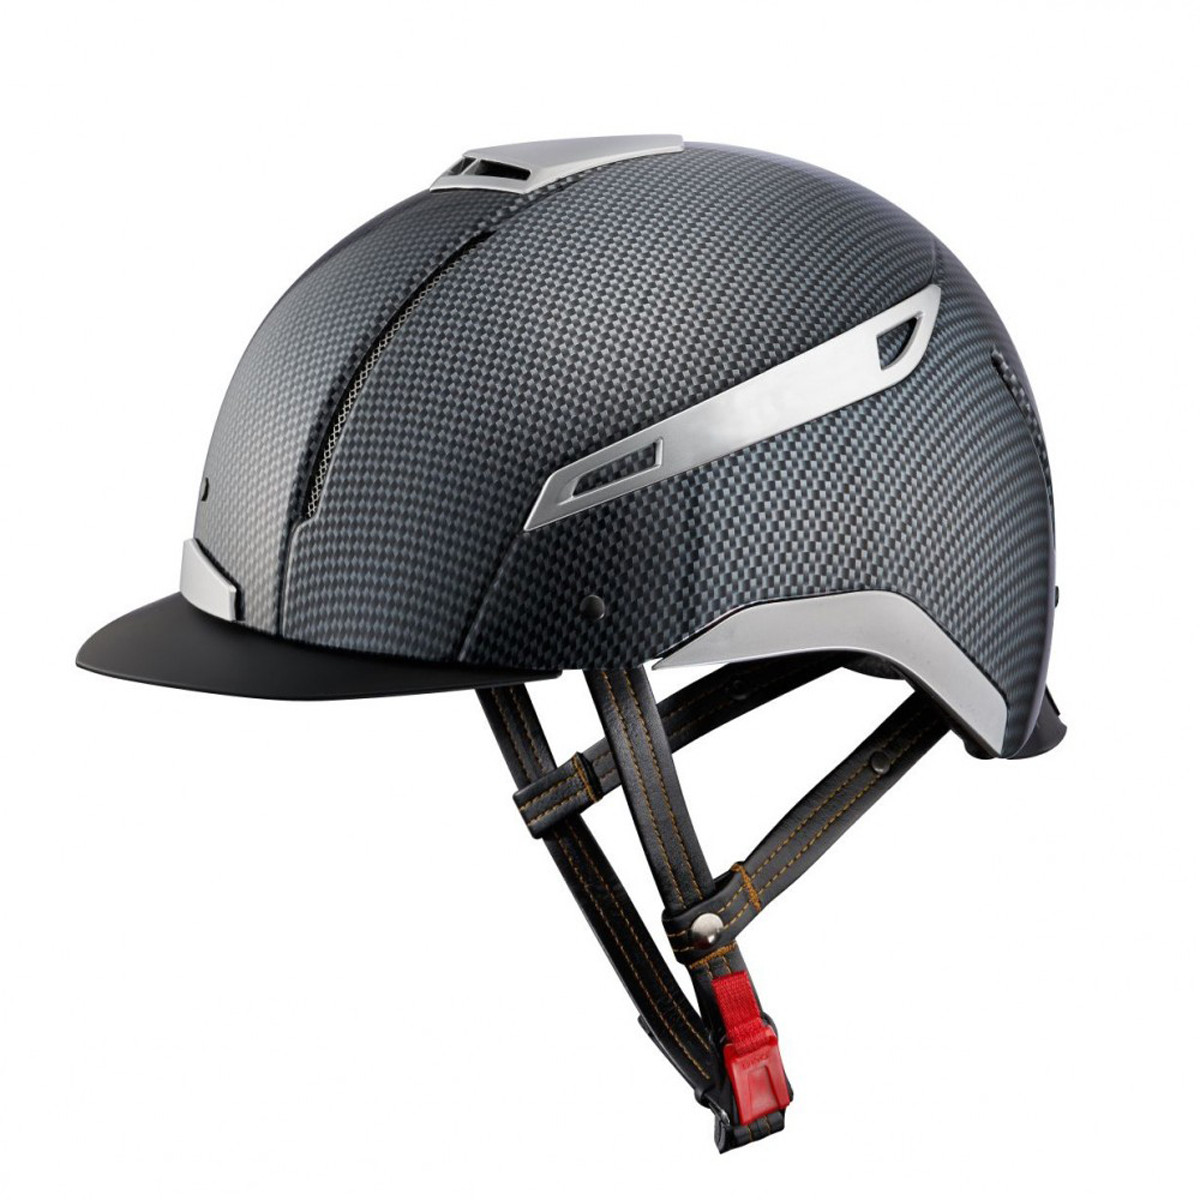 Jin Carbon Design Helmet